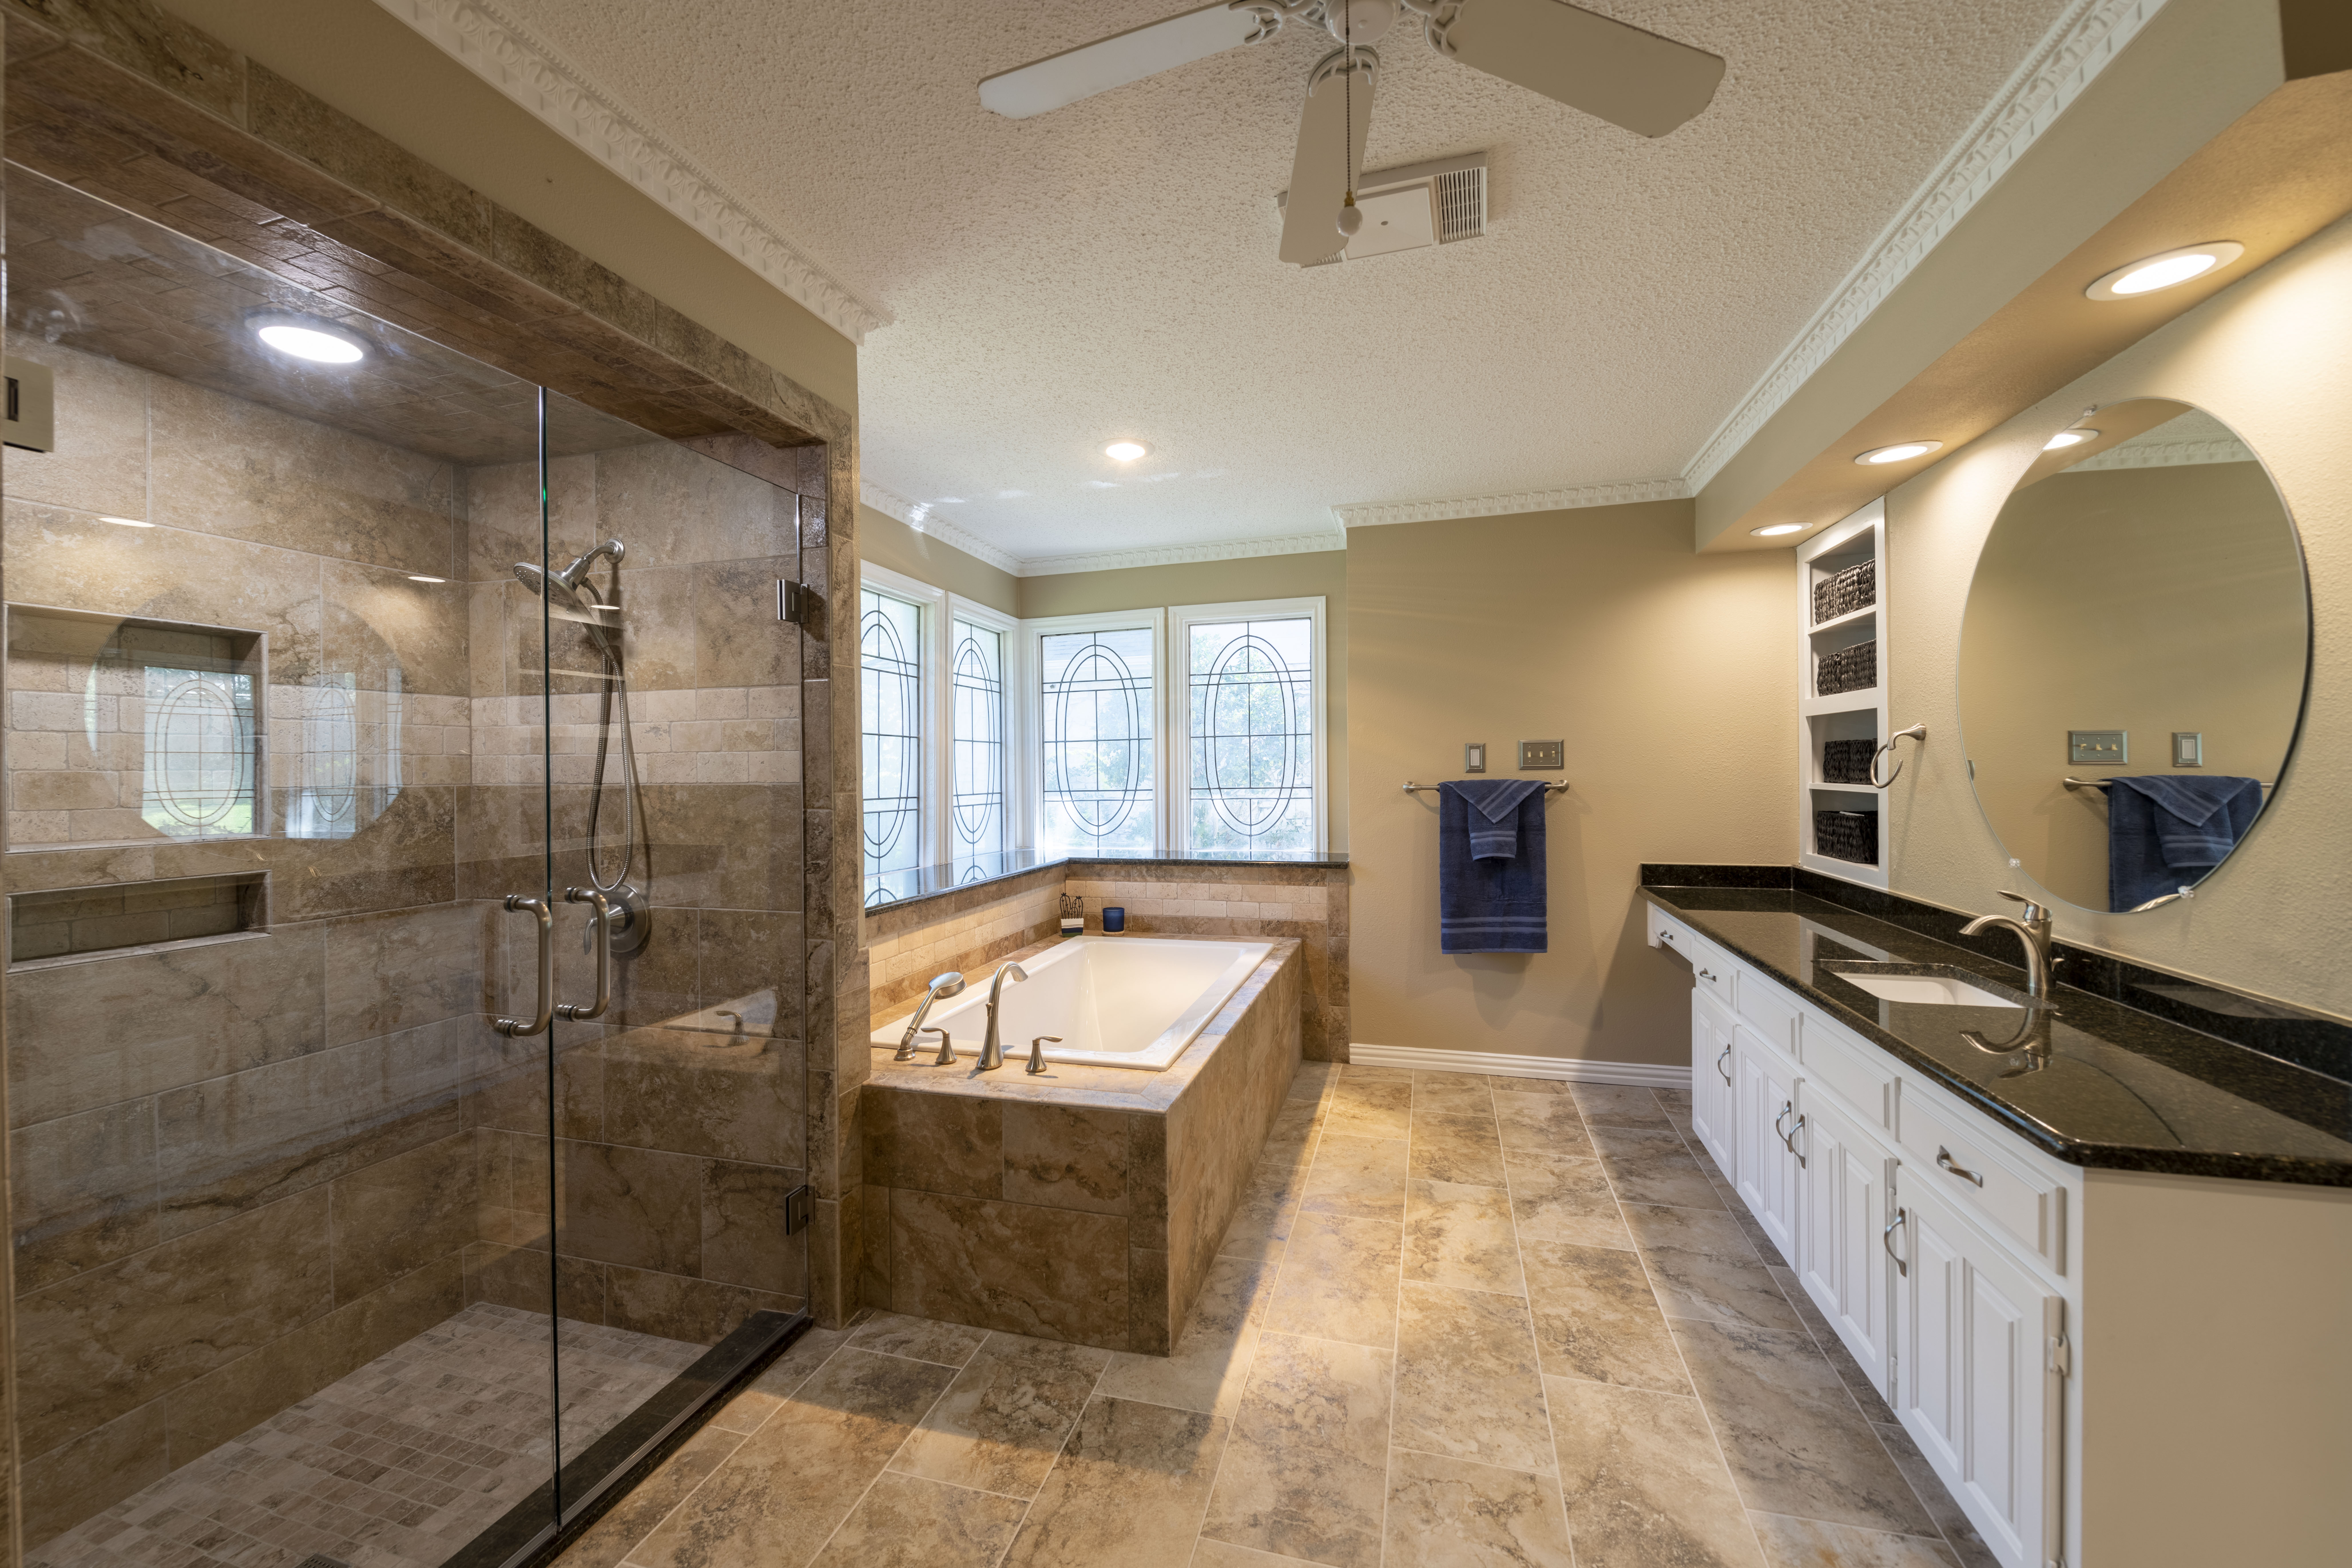 Arlington Bath Remodel